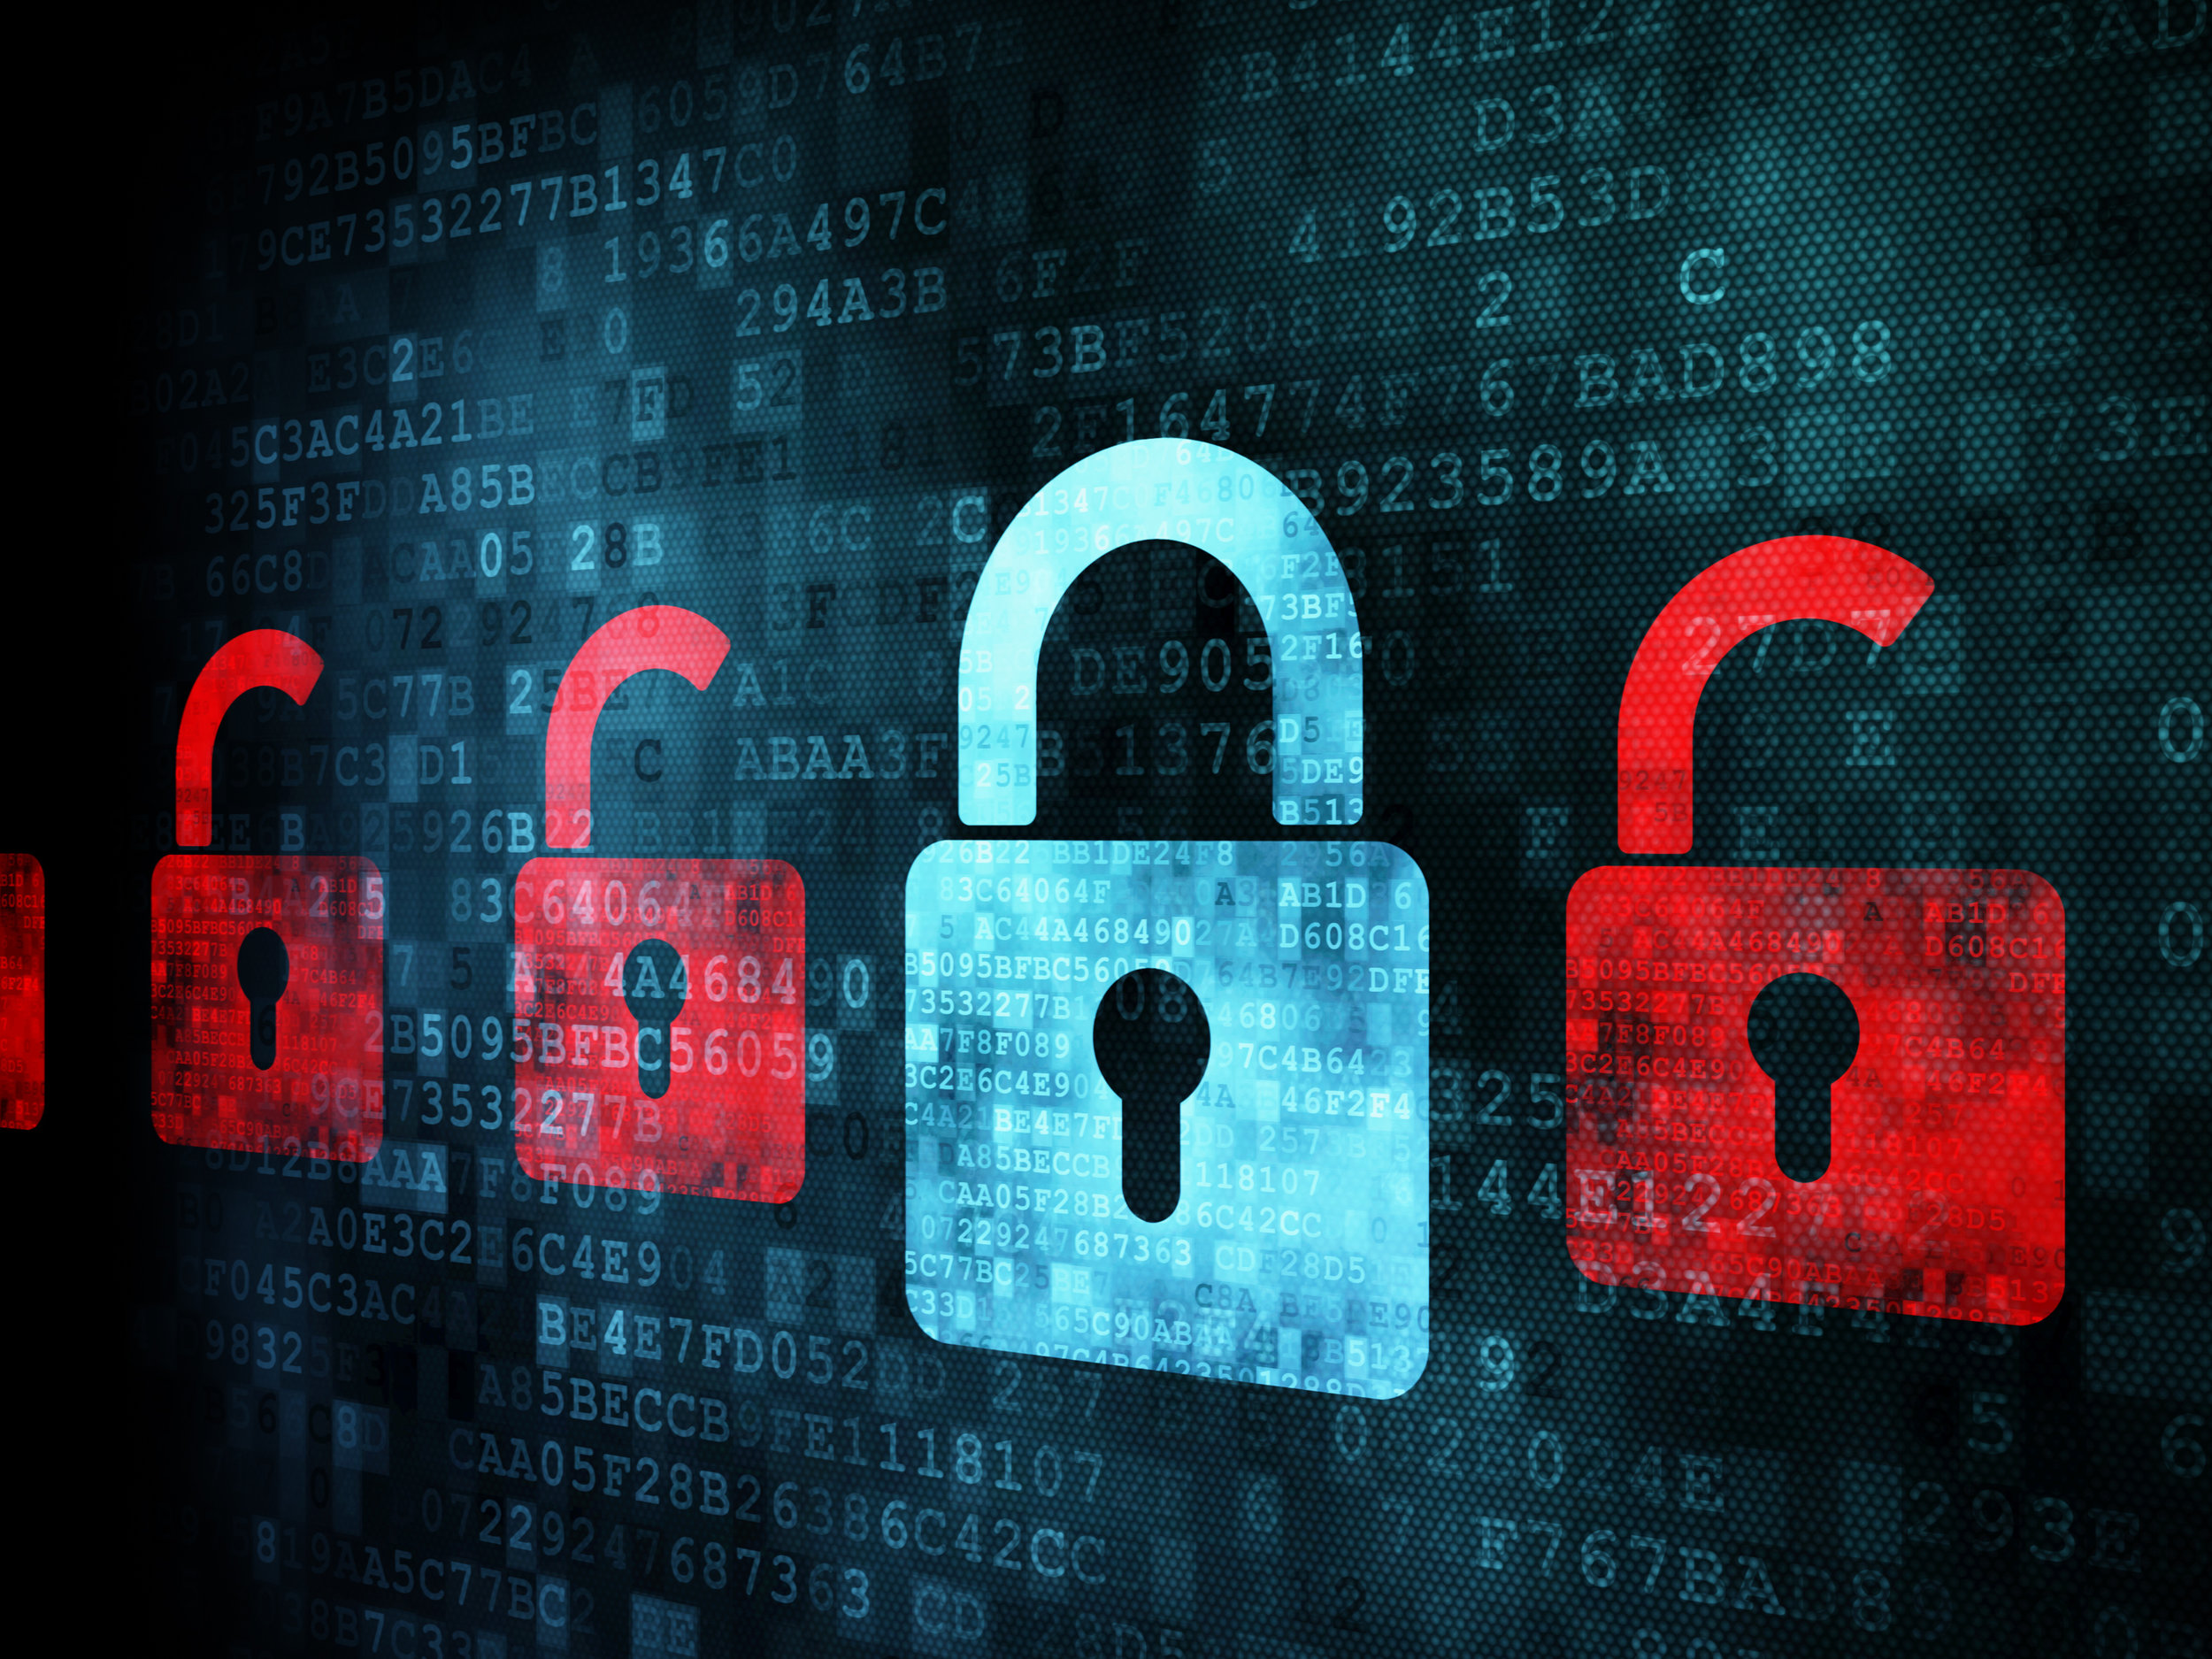 SECURE - We can ensure security for your organization from devices all the way through to network policies. We can protect devices and their data with encryption enforcement, enterprise remote wipe, and integrated network access control.